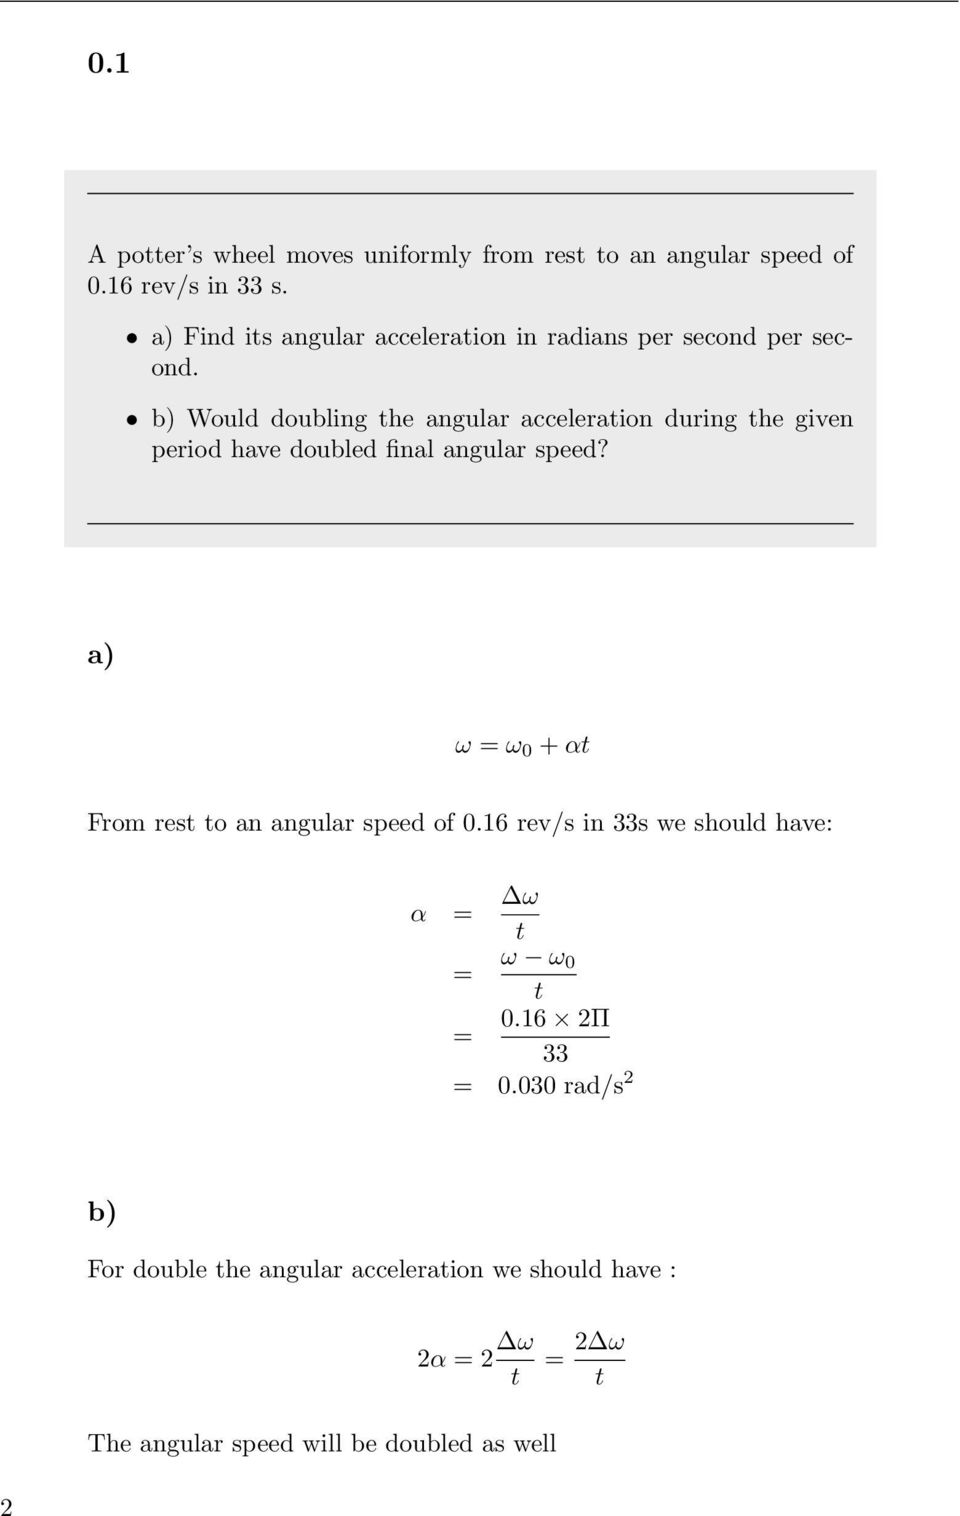 b) Would doubling the angular acceleration during the given period have doubled final angular speed?